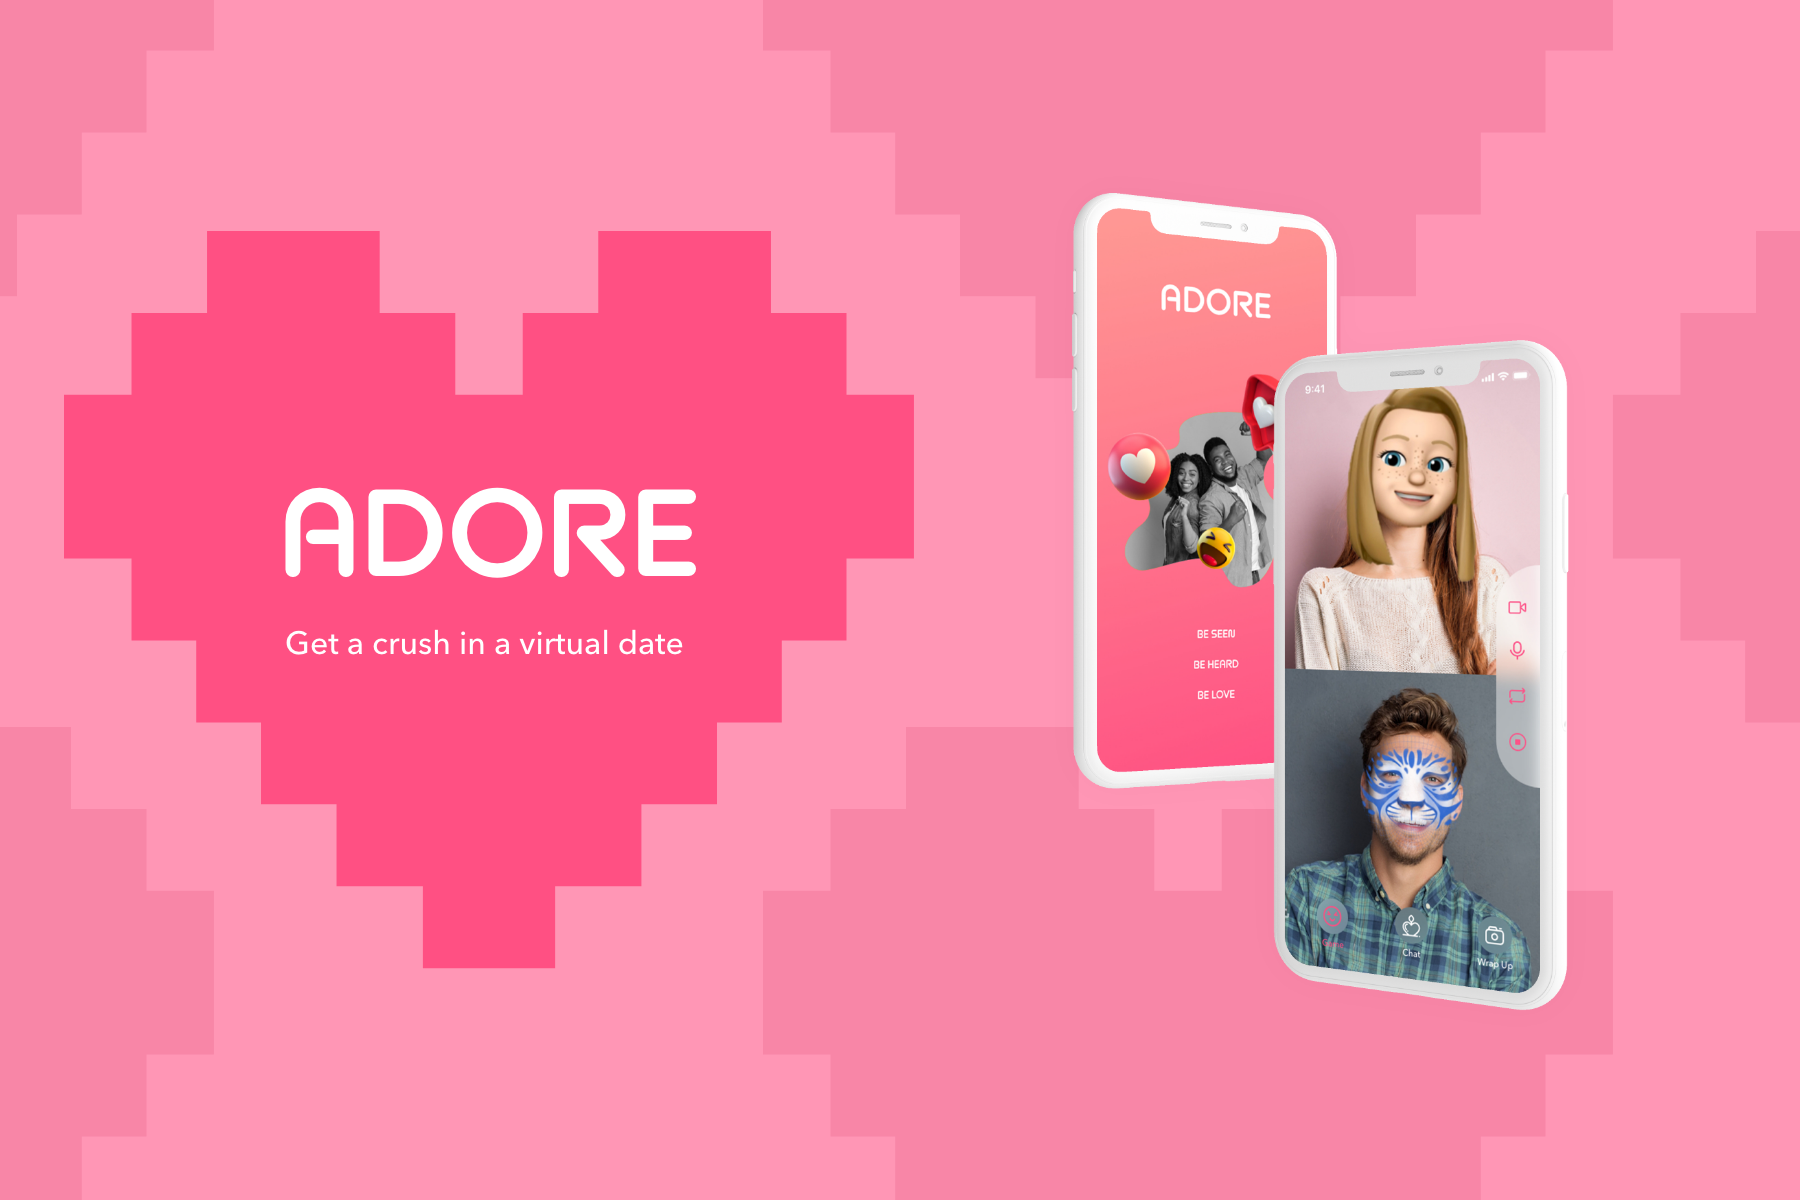 Adore Adore is a video platform that facilitates virtual dates to create crush moments.